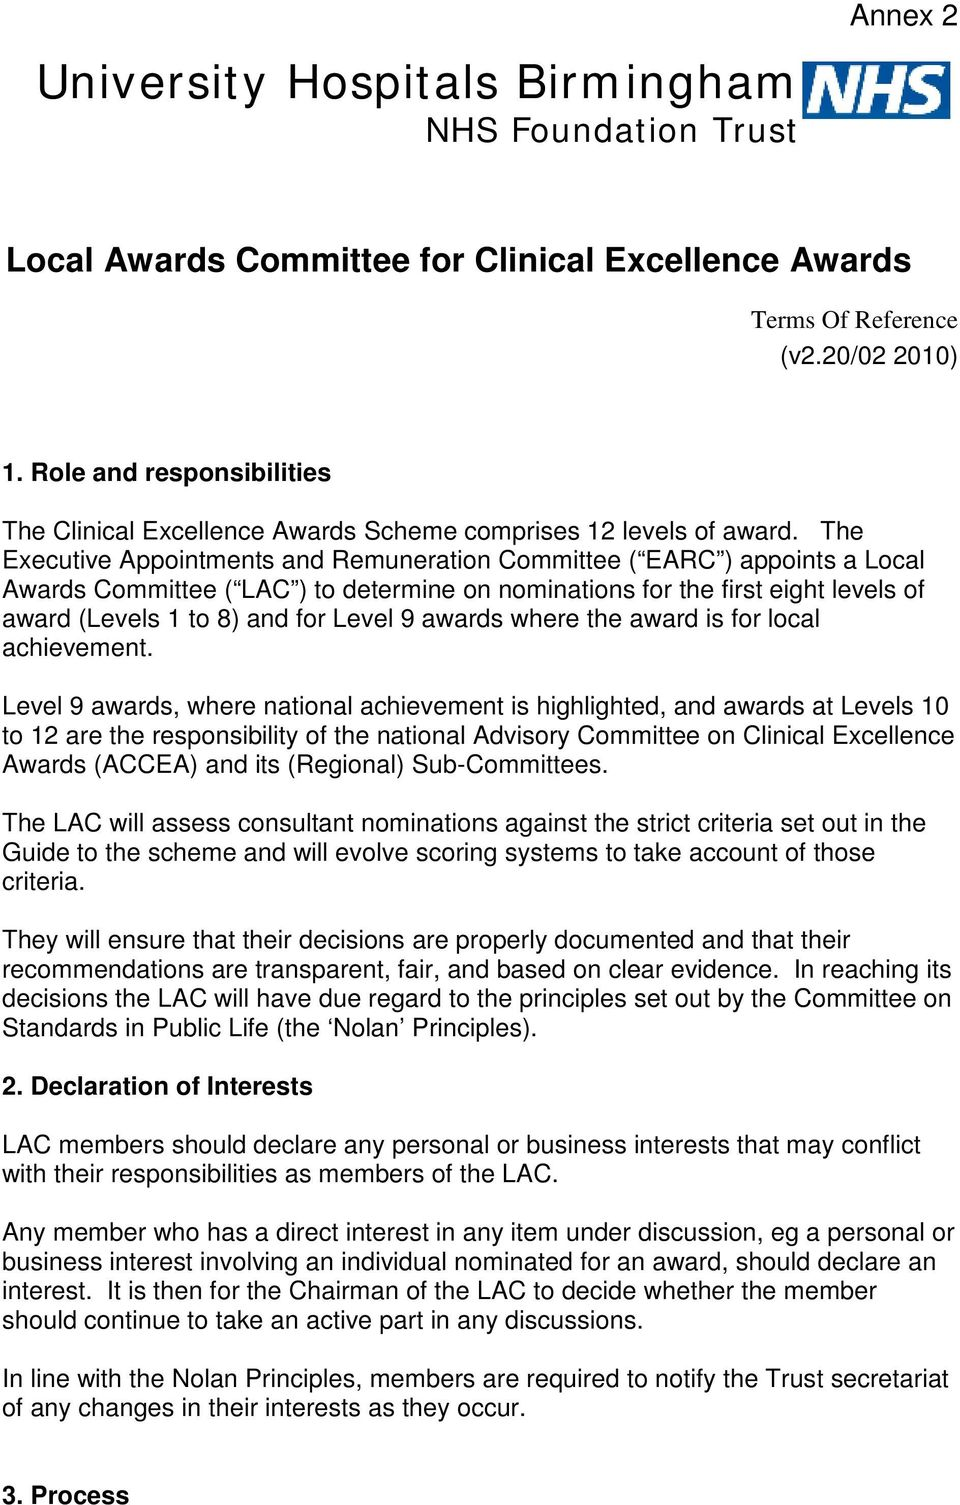 The Executive Appointments and Remuneration Committee ( EARC ) appoints a Local Awards Committee ( LAC ) to determine on nominations for the first eight levels of award (Levels 1 to 8) and for Level